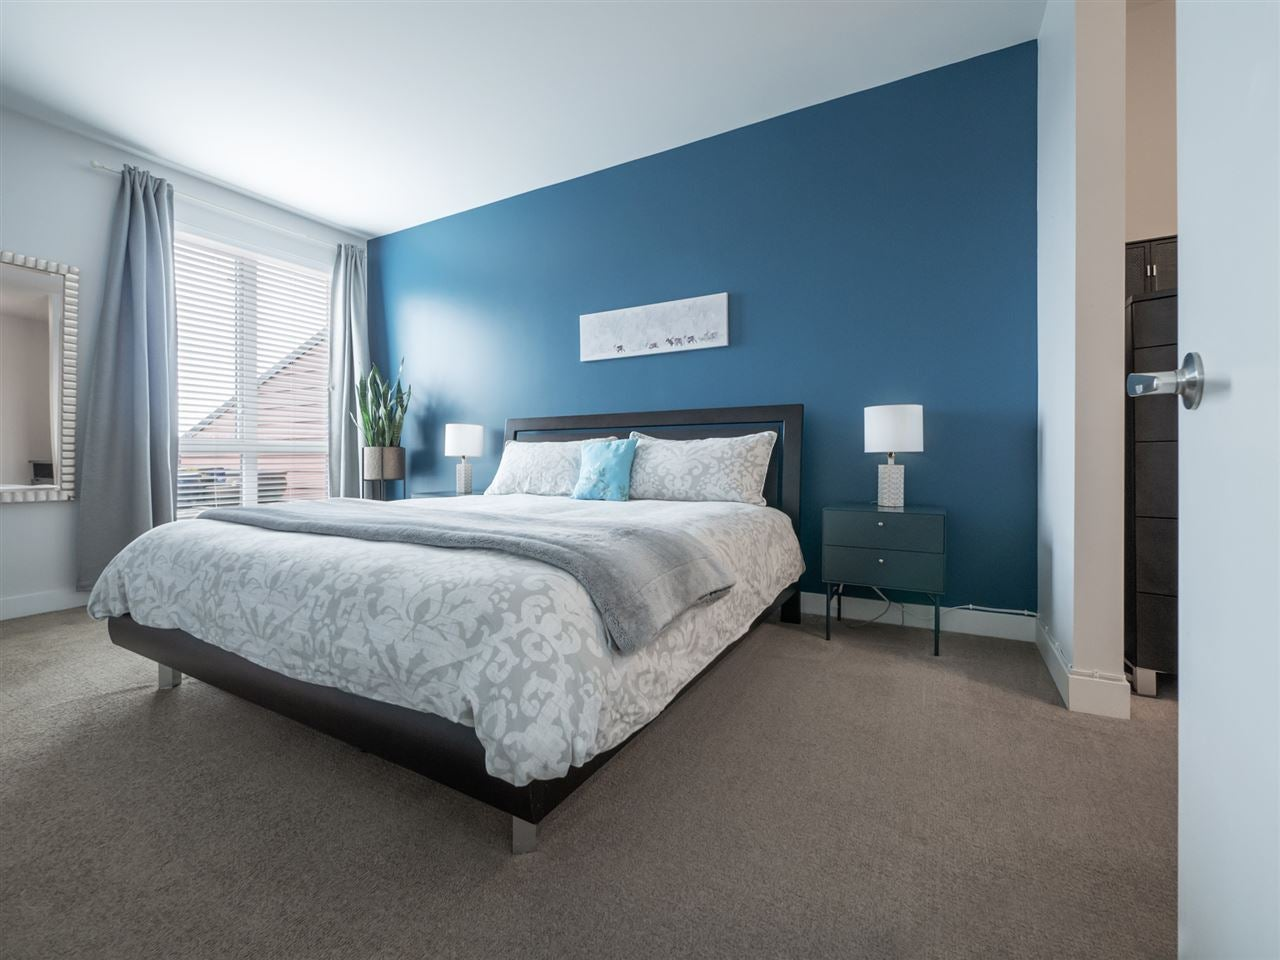 210 210 875 GIBSONS WAY - Gibsons & Area Apartment/Condo for sale, 2 Bedrooms (R2542139) - #13